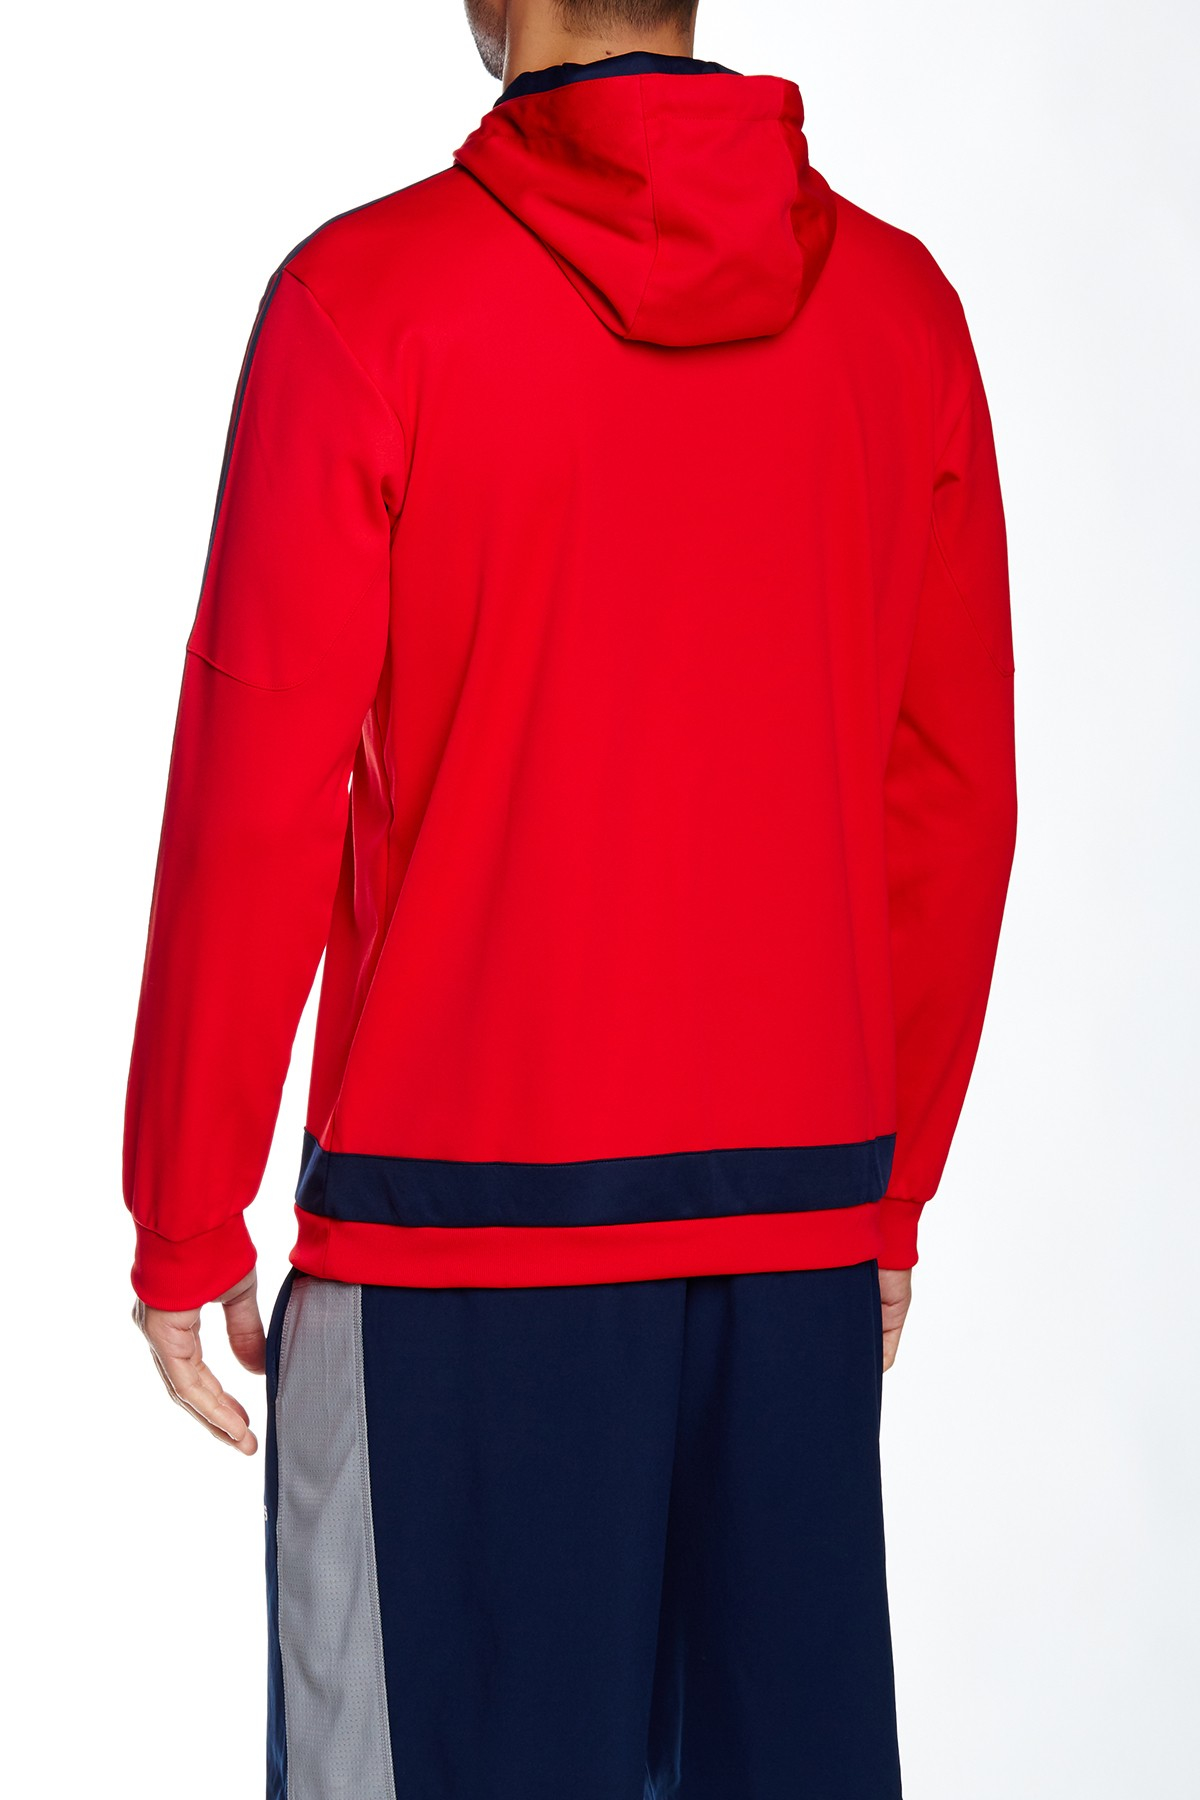 adidas originals tiro hooded pullover in red for men lyst. Black Bedroom Furniture Sets. Home Design Ideas